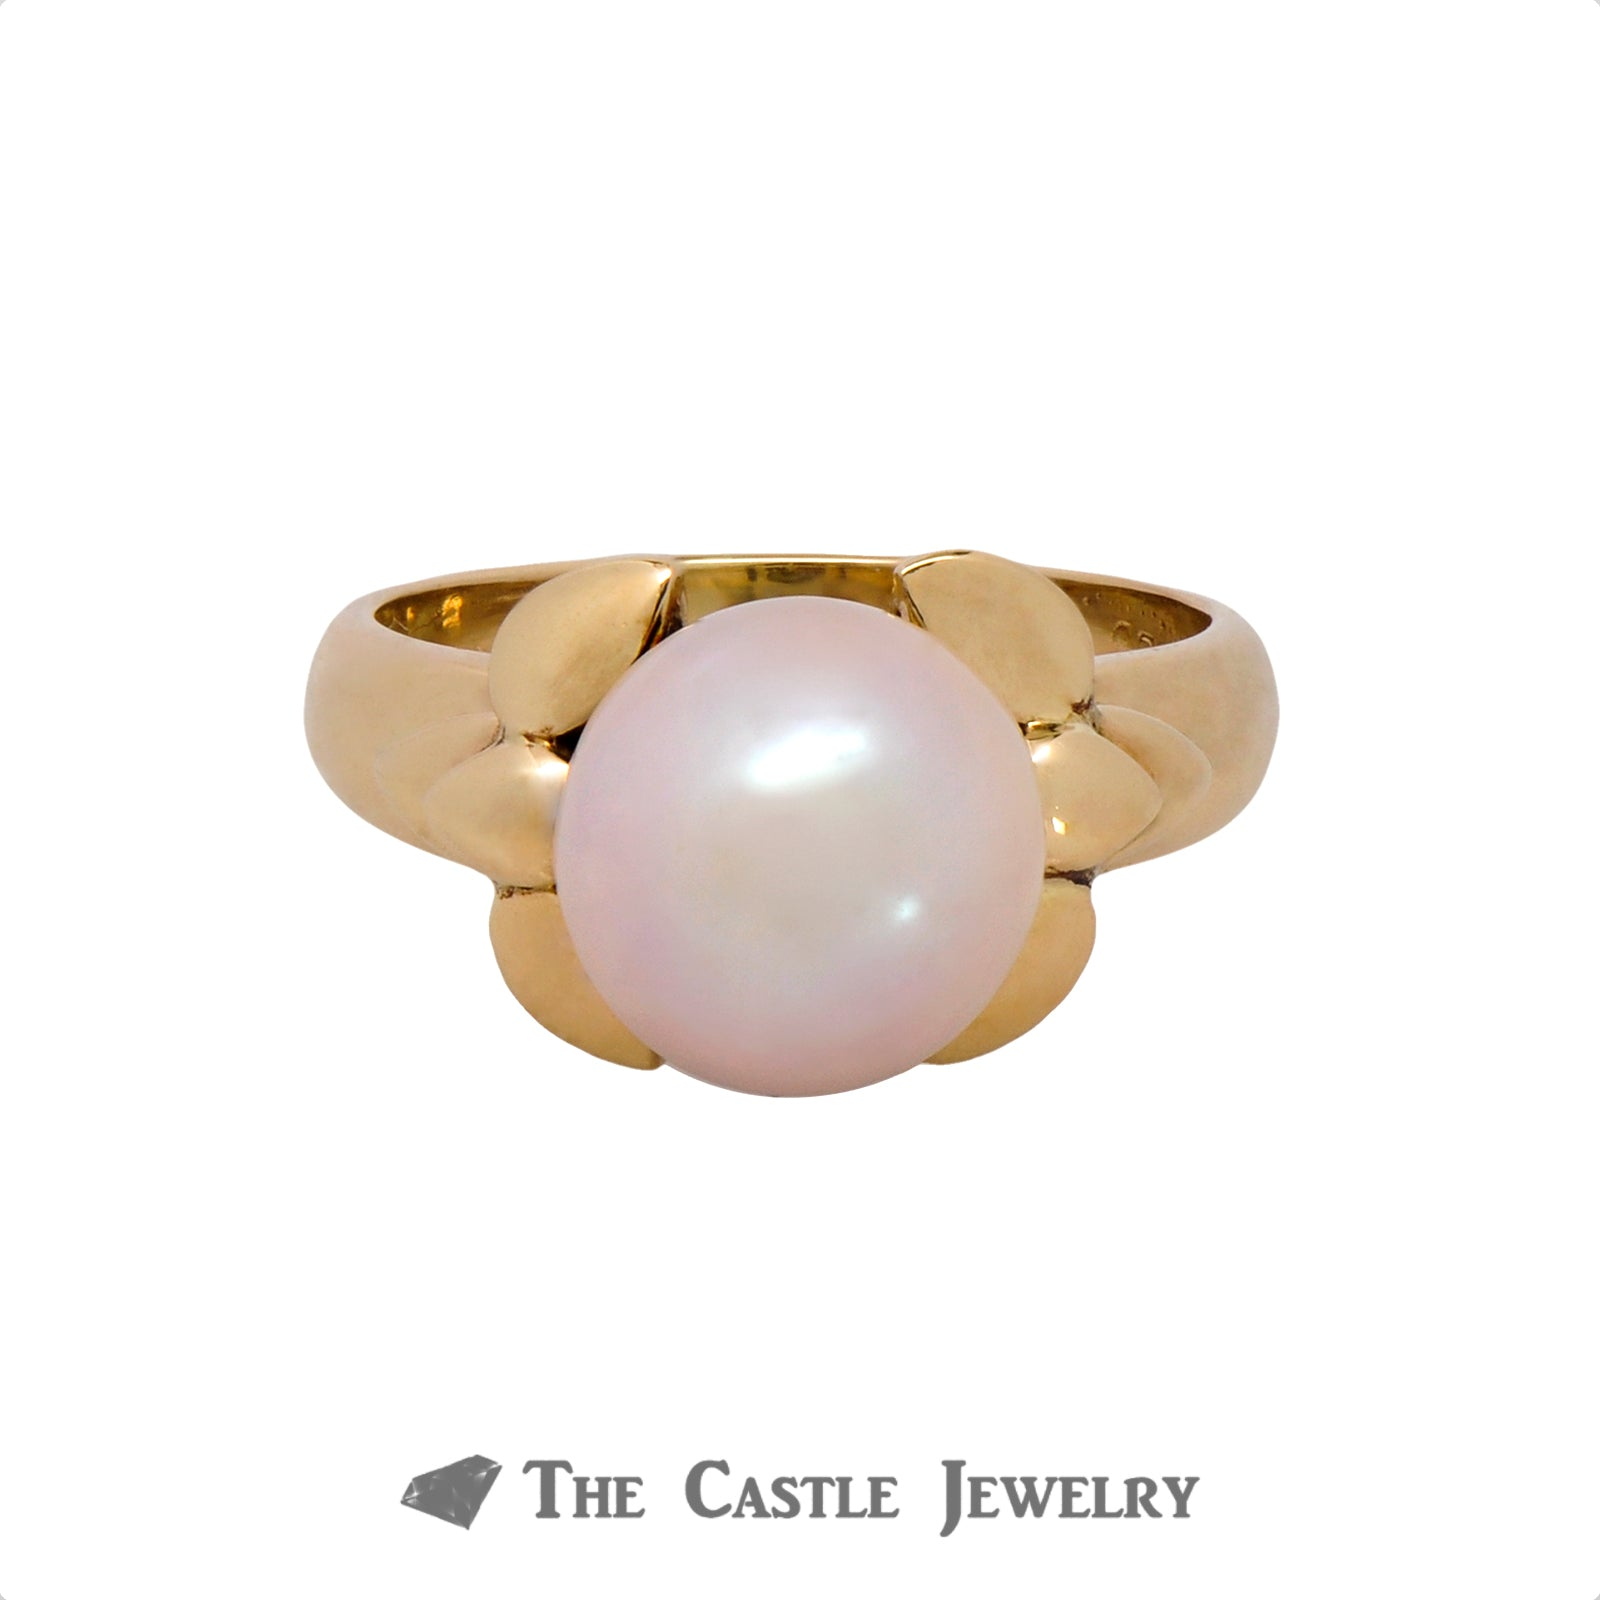 Pearl Ring with Fancy Bow Design Sides in 14K Yellow Gold-0